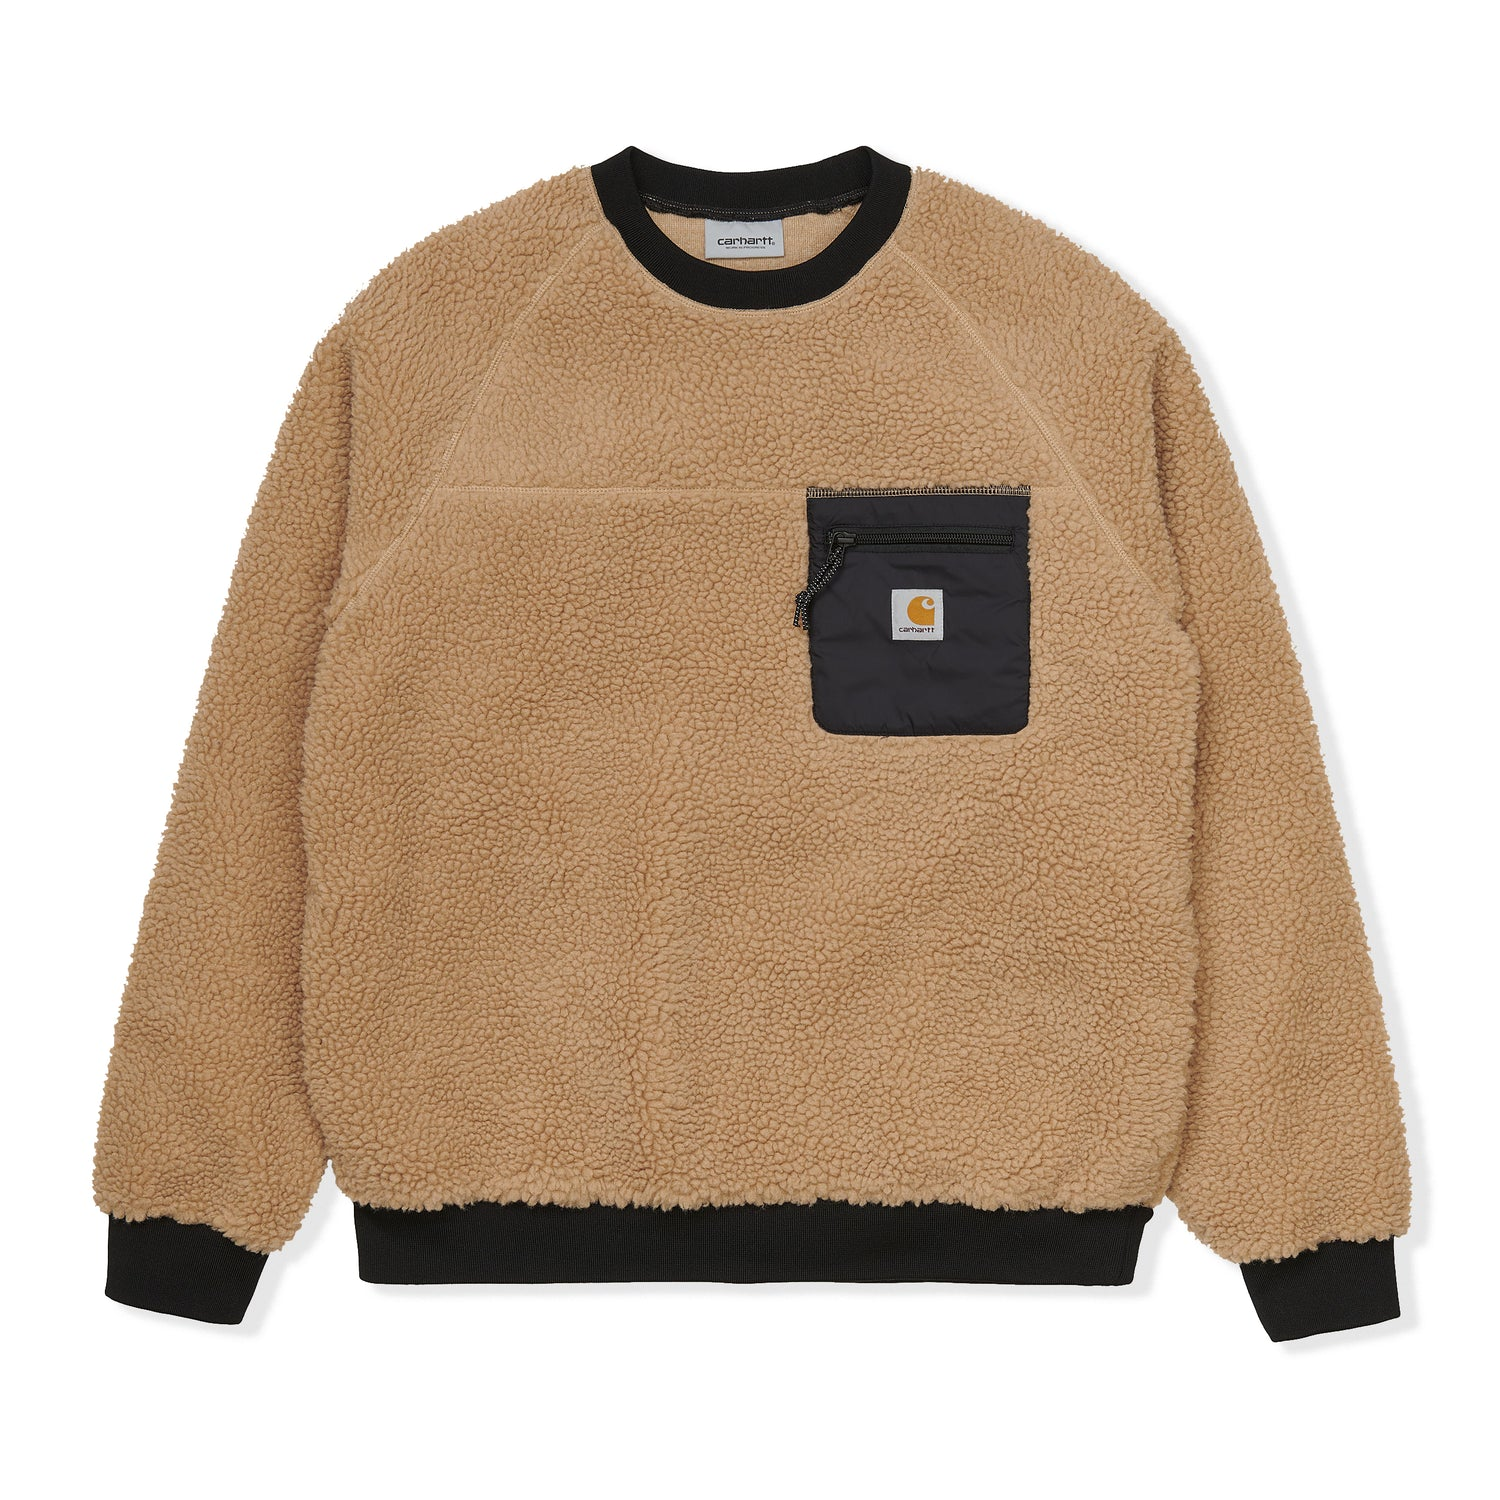 Prentis Crewneck, Dusty H Brown